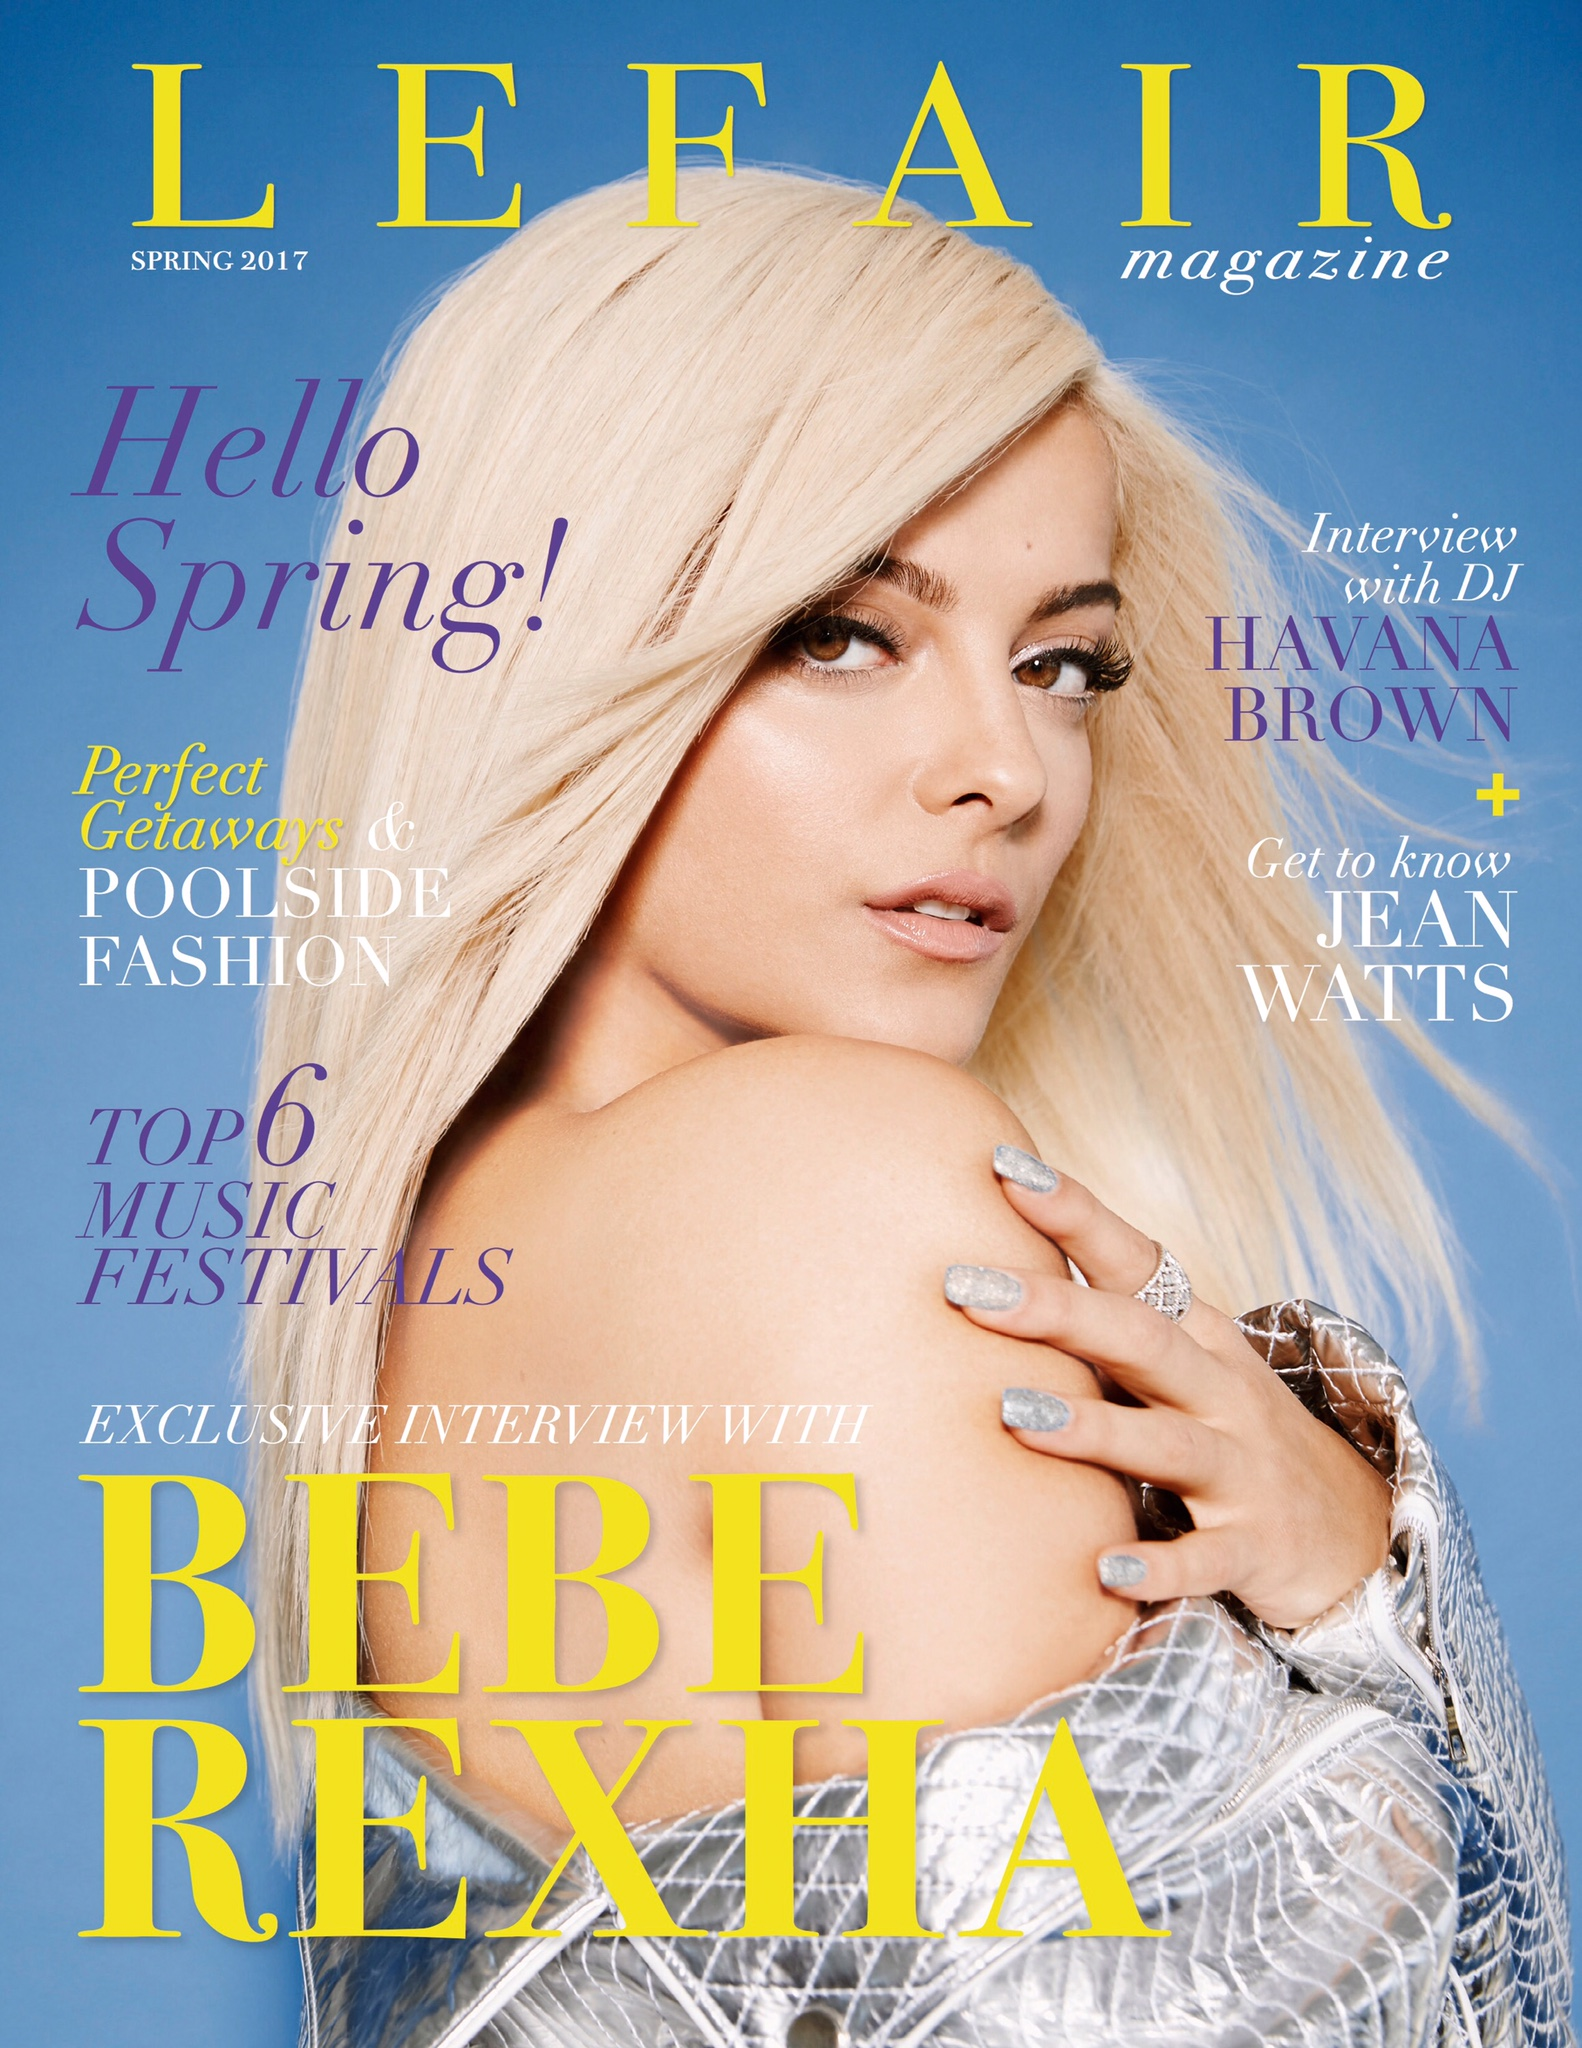 Lefair Magazine Spring Issue Cover Bebe Rexha